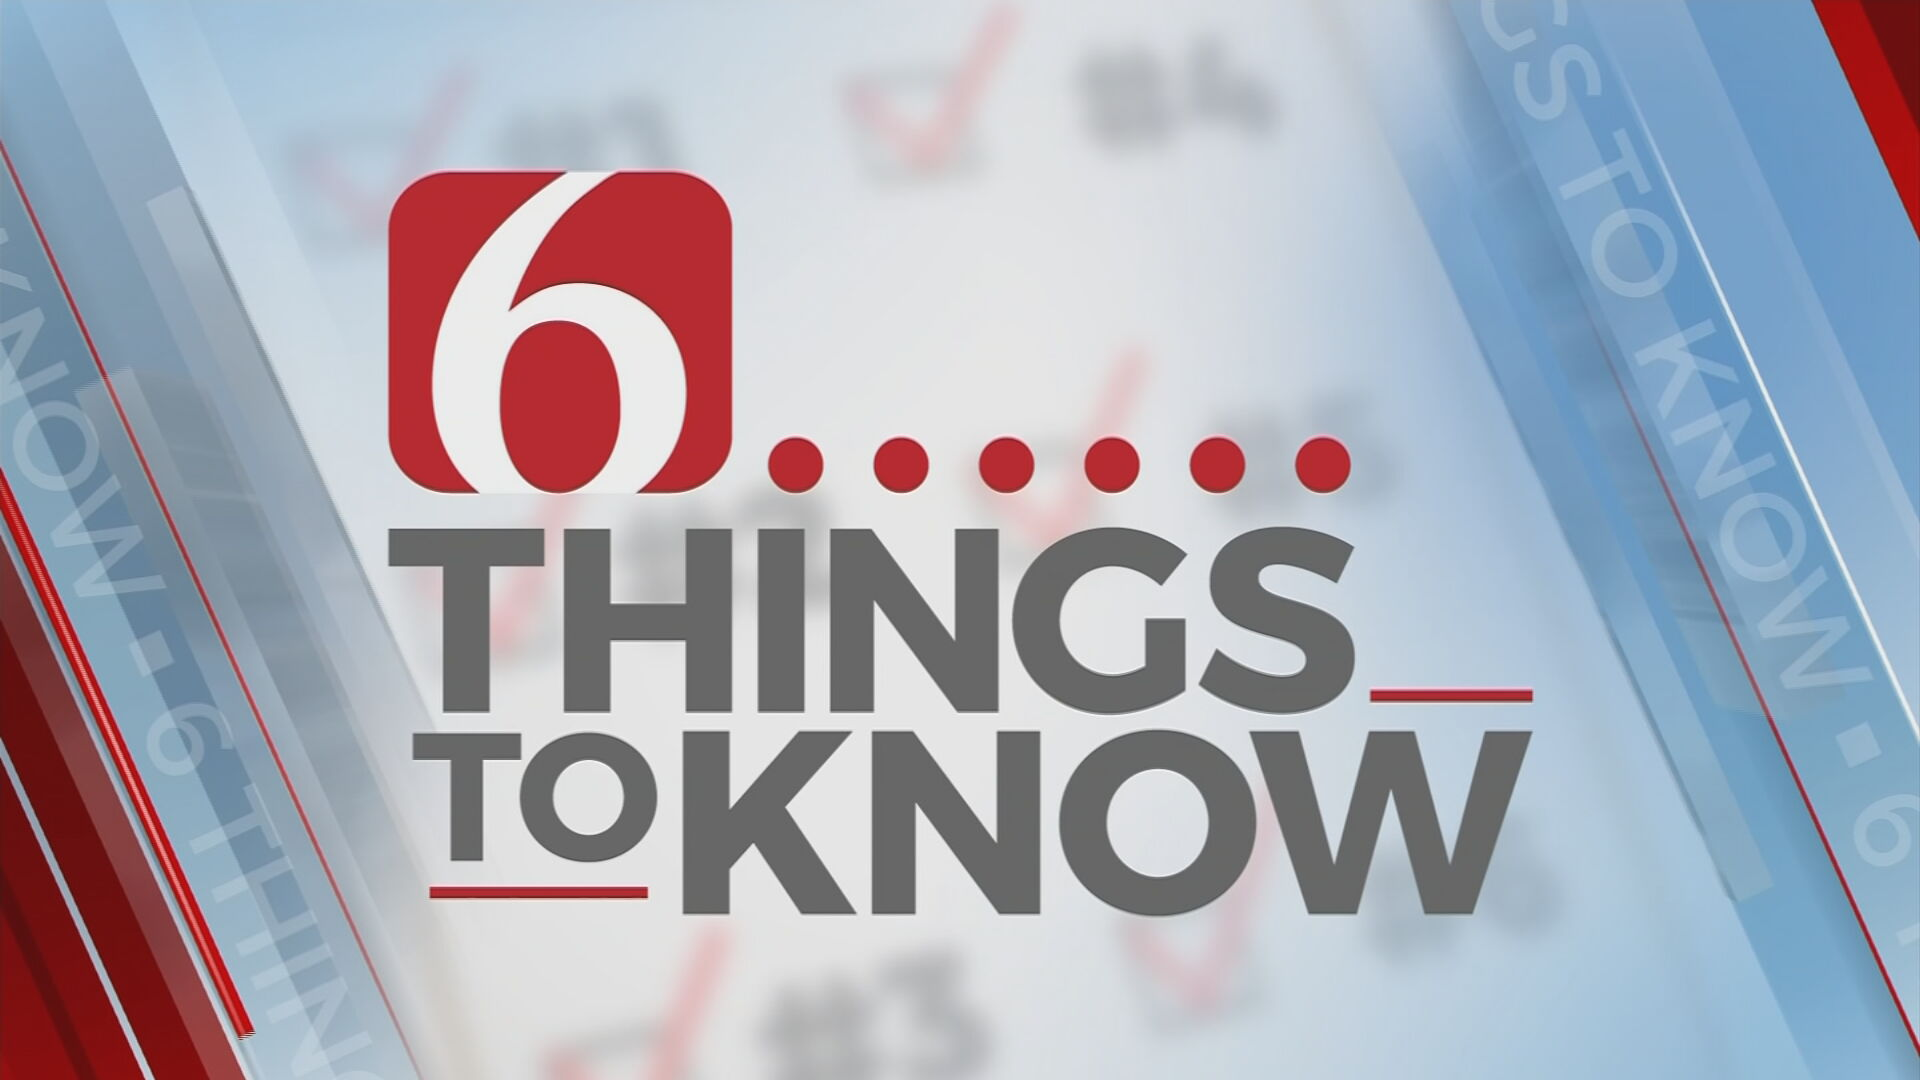 6 Things To Know (Oct 1): Start Of Oklahoma Restaurant Days